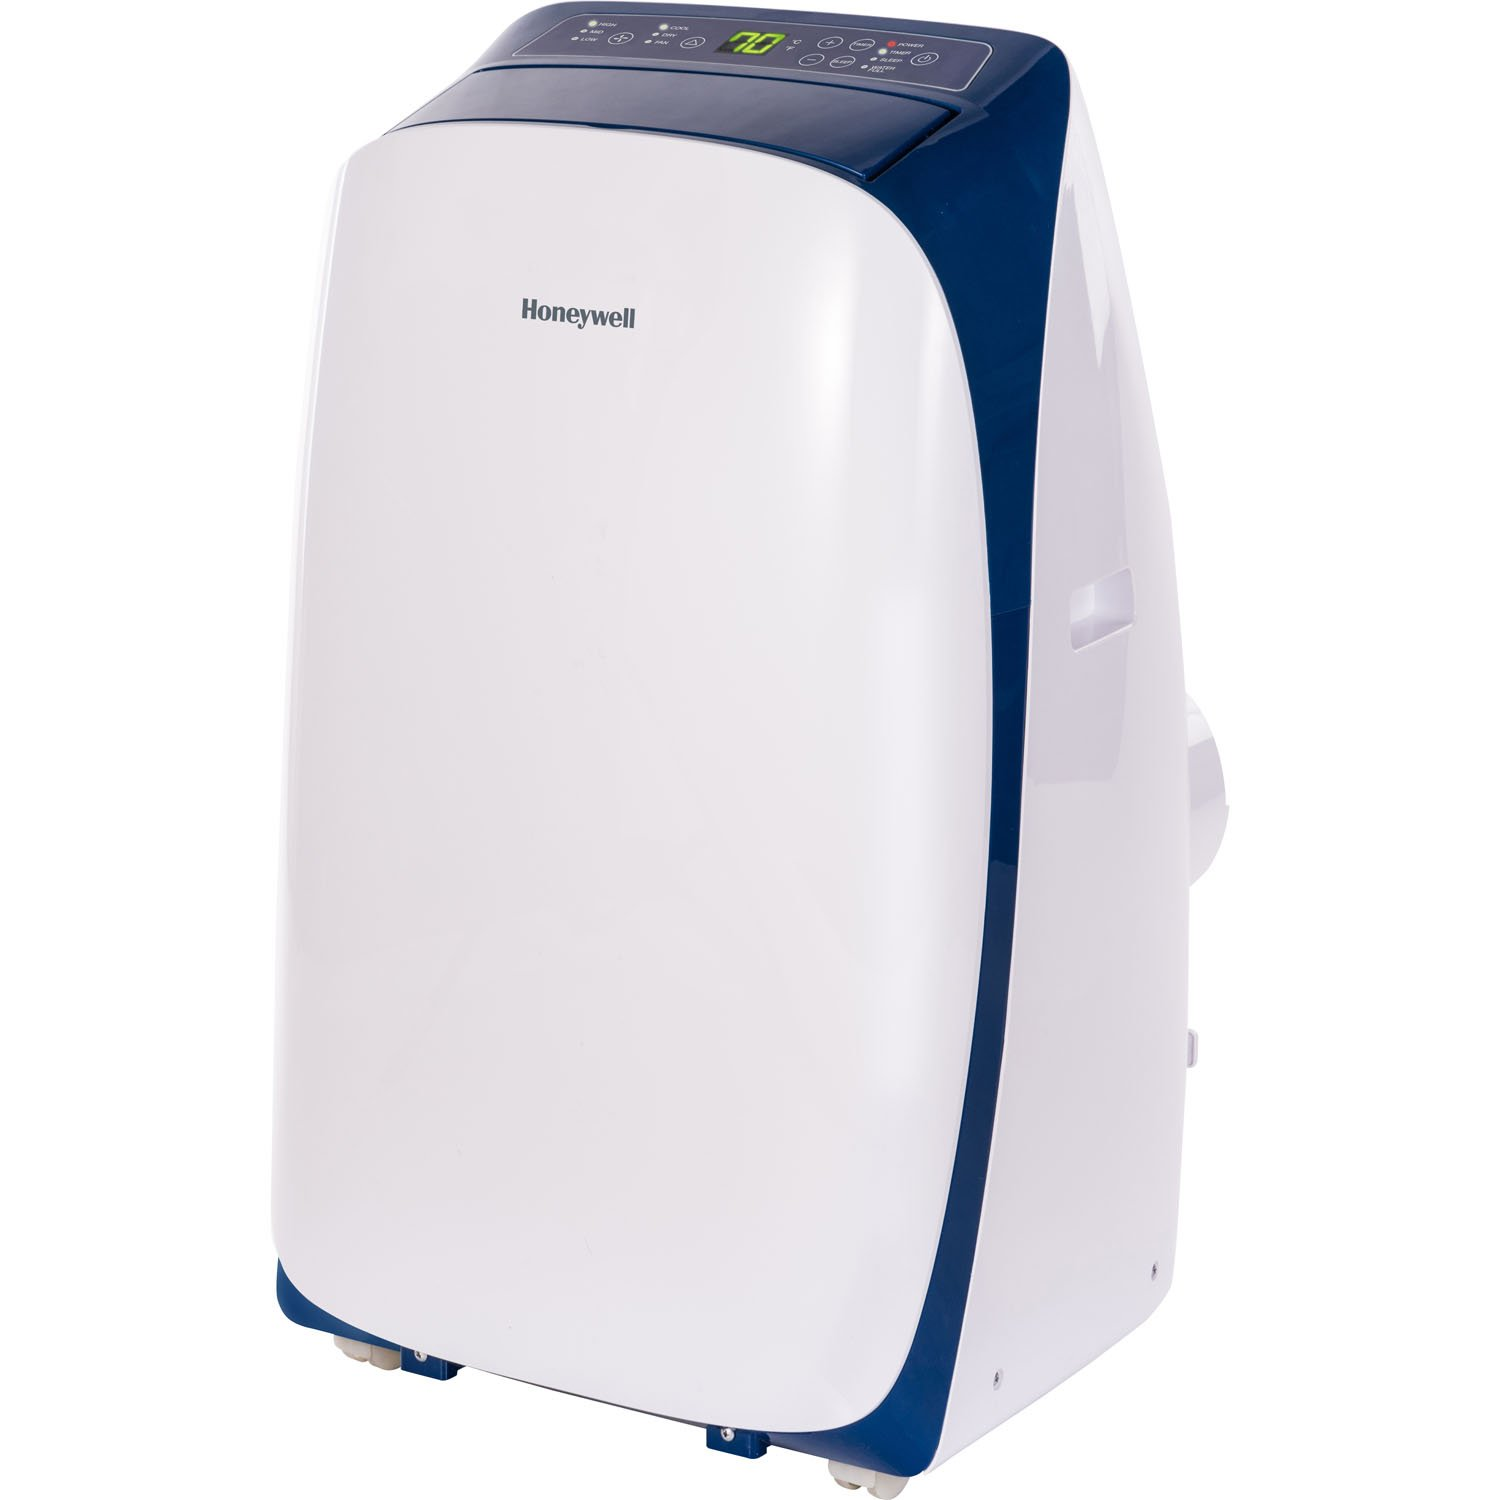 Honeywell Contempo Series Portable Air Conditioner, Dehumidifier & Fan with Dual Filtration System for Rooms Up To 550 Sq. Ft. Polished & Powerful (Blue/White)